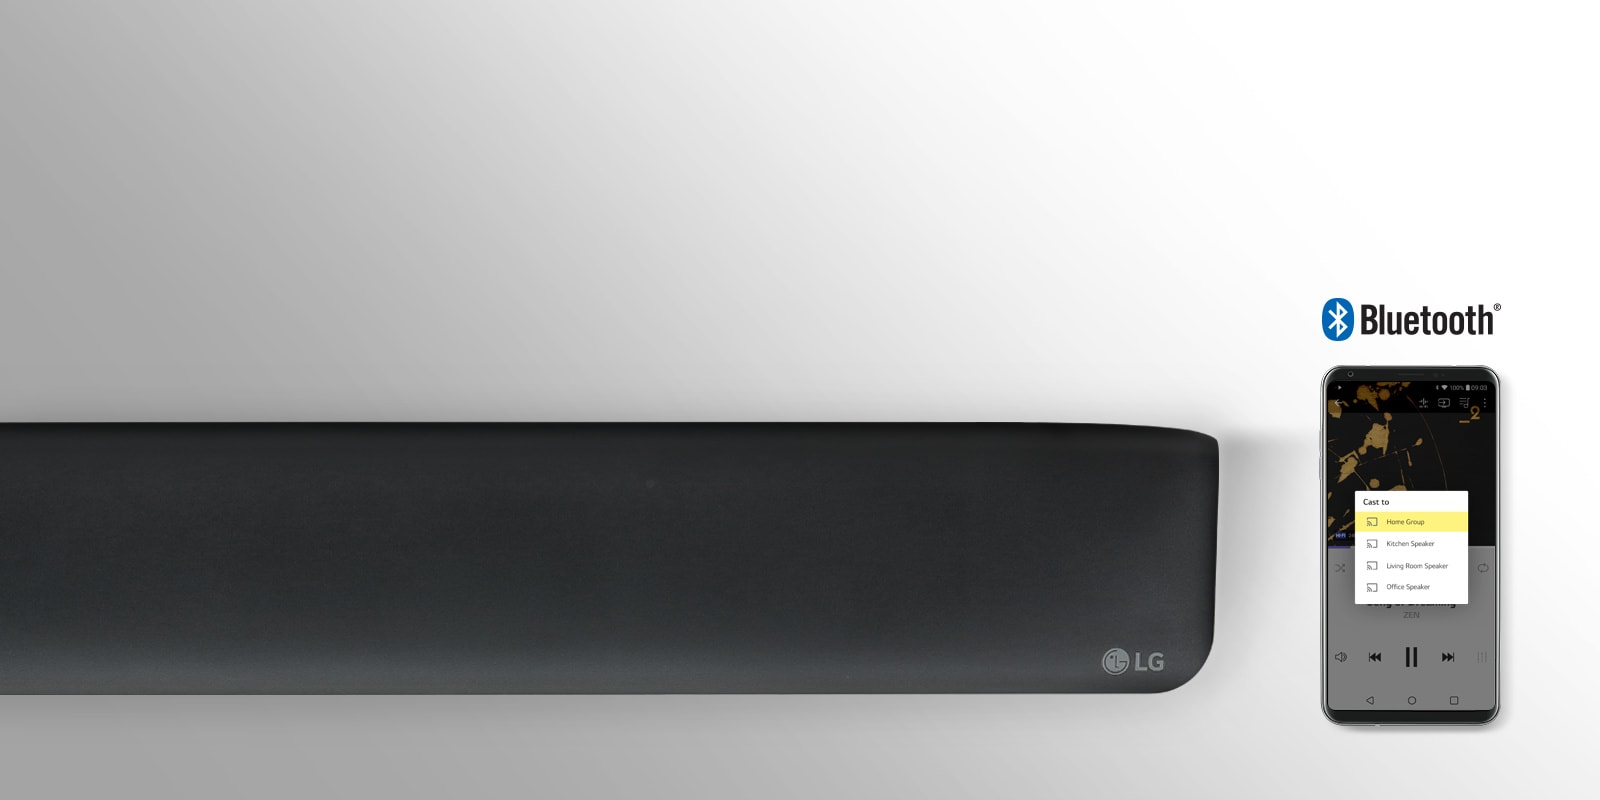 https://www.lg.com/rs/images/AV/features/03_SK1_Bluetooth_Stand_by_wake_up_your_Sound_Bar_on_demand_Desktop.jpg